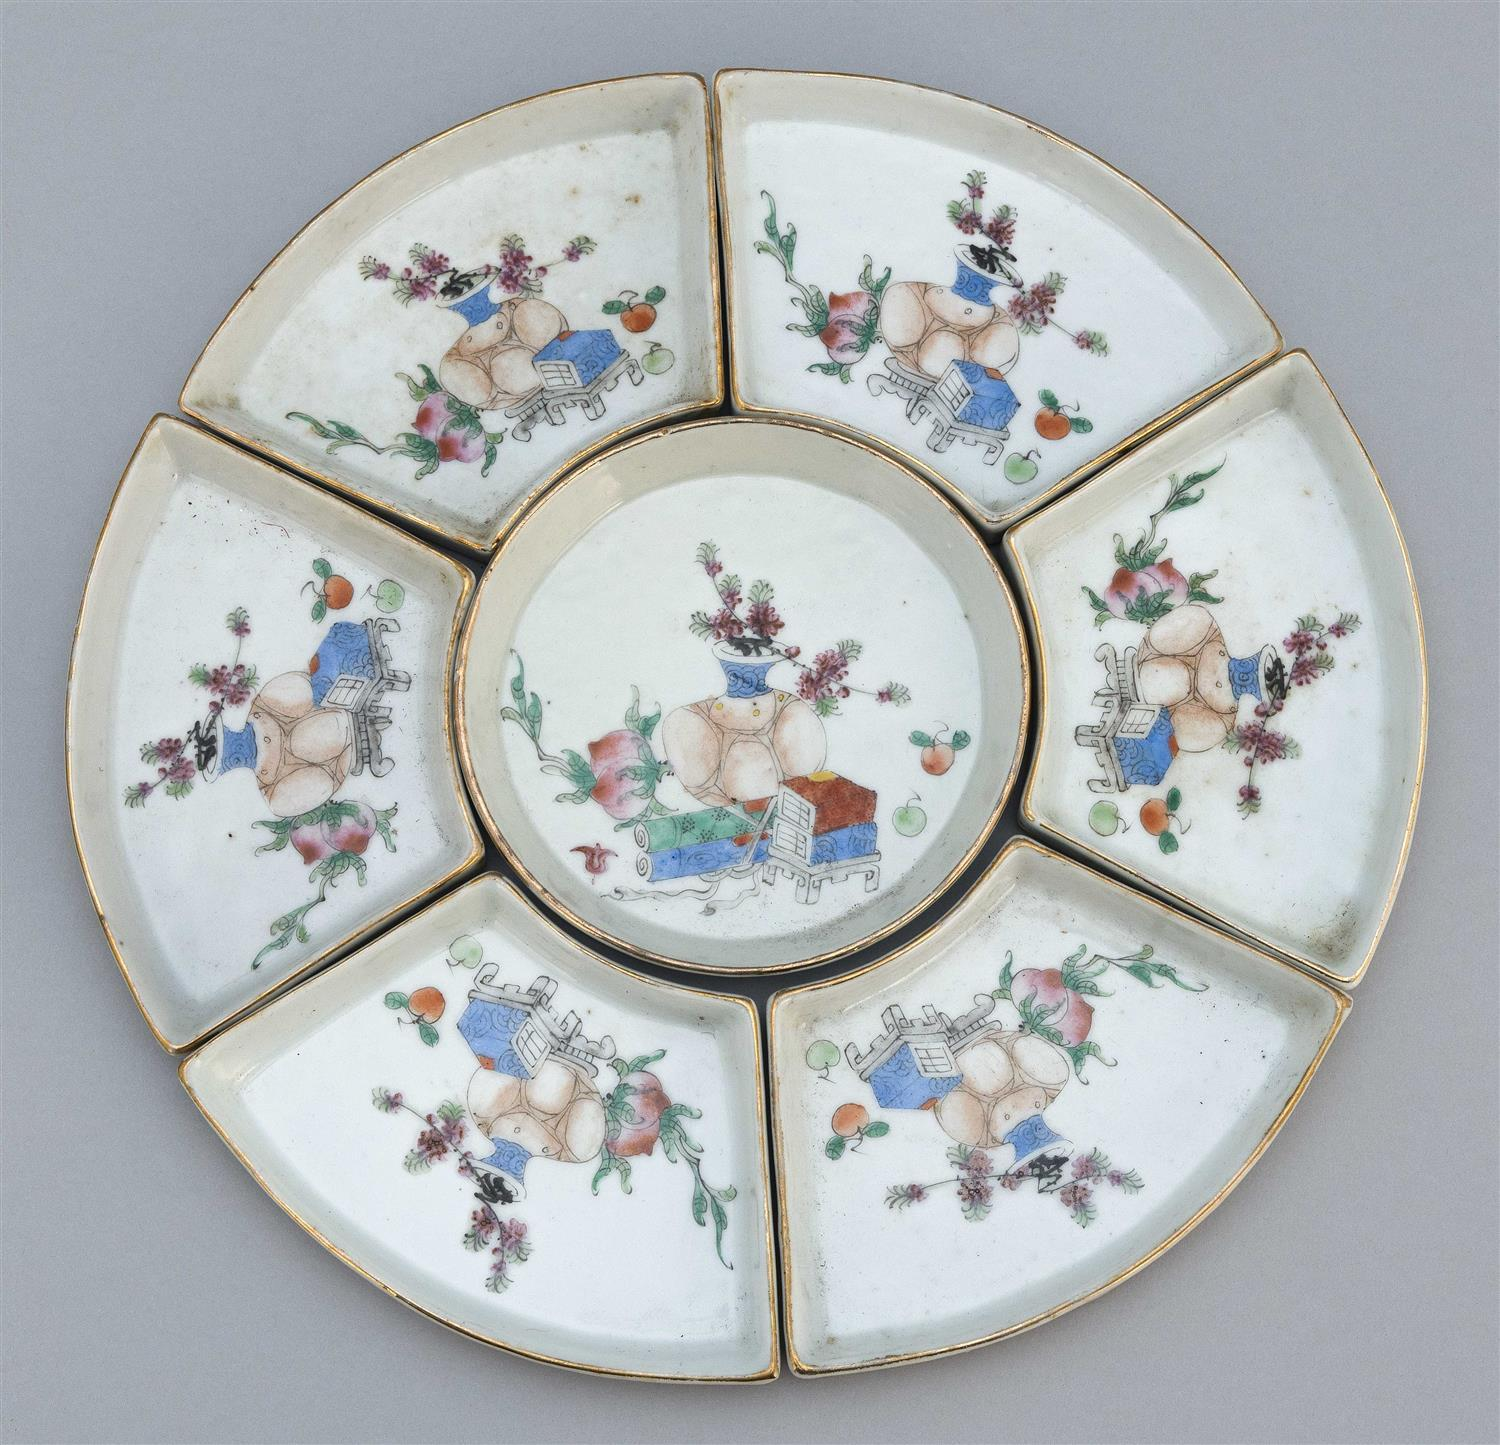 CHINESE FAMILLE ROSE PORCELAIN SEVEN-PIECE SWEETMEAT SET Each condiment tray with gilt rims and decoration of scholars' items. Assem..